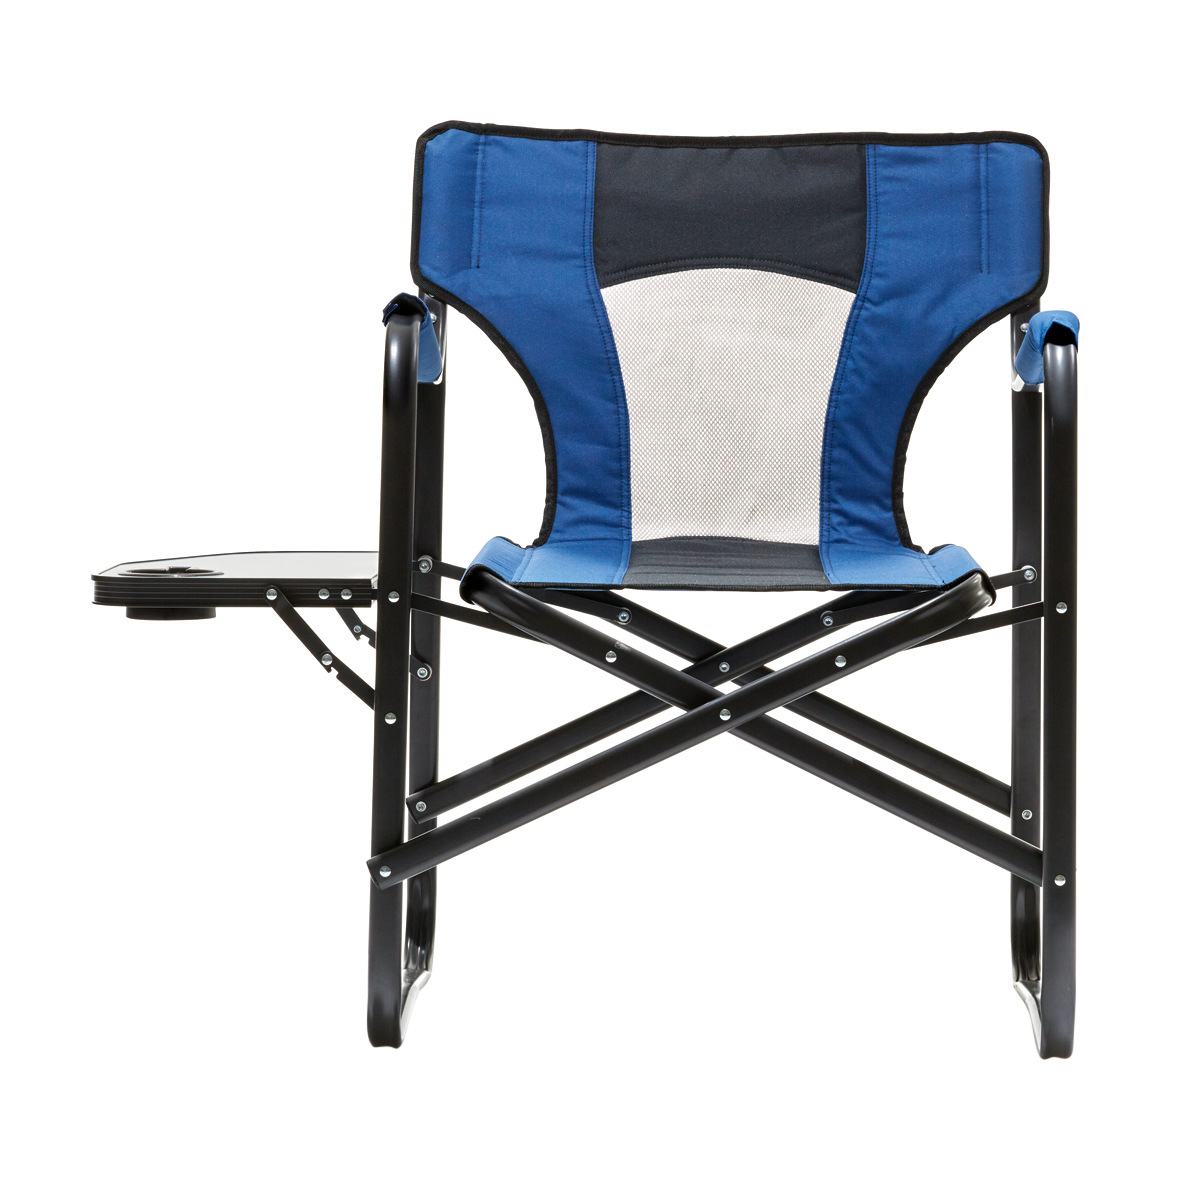 director chair covers in stores diy outdoor cushions directors with side table kmart